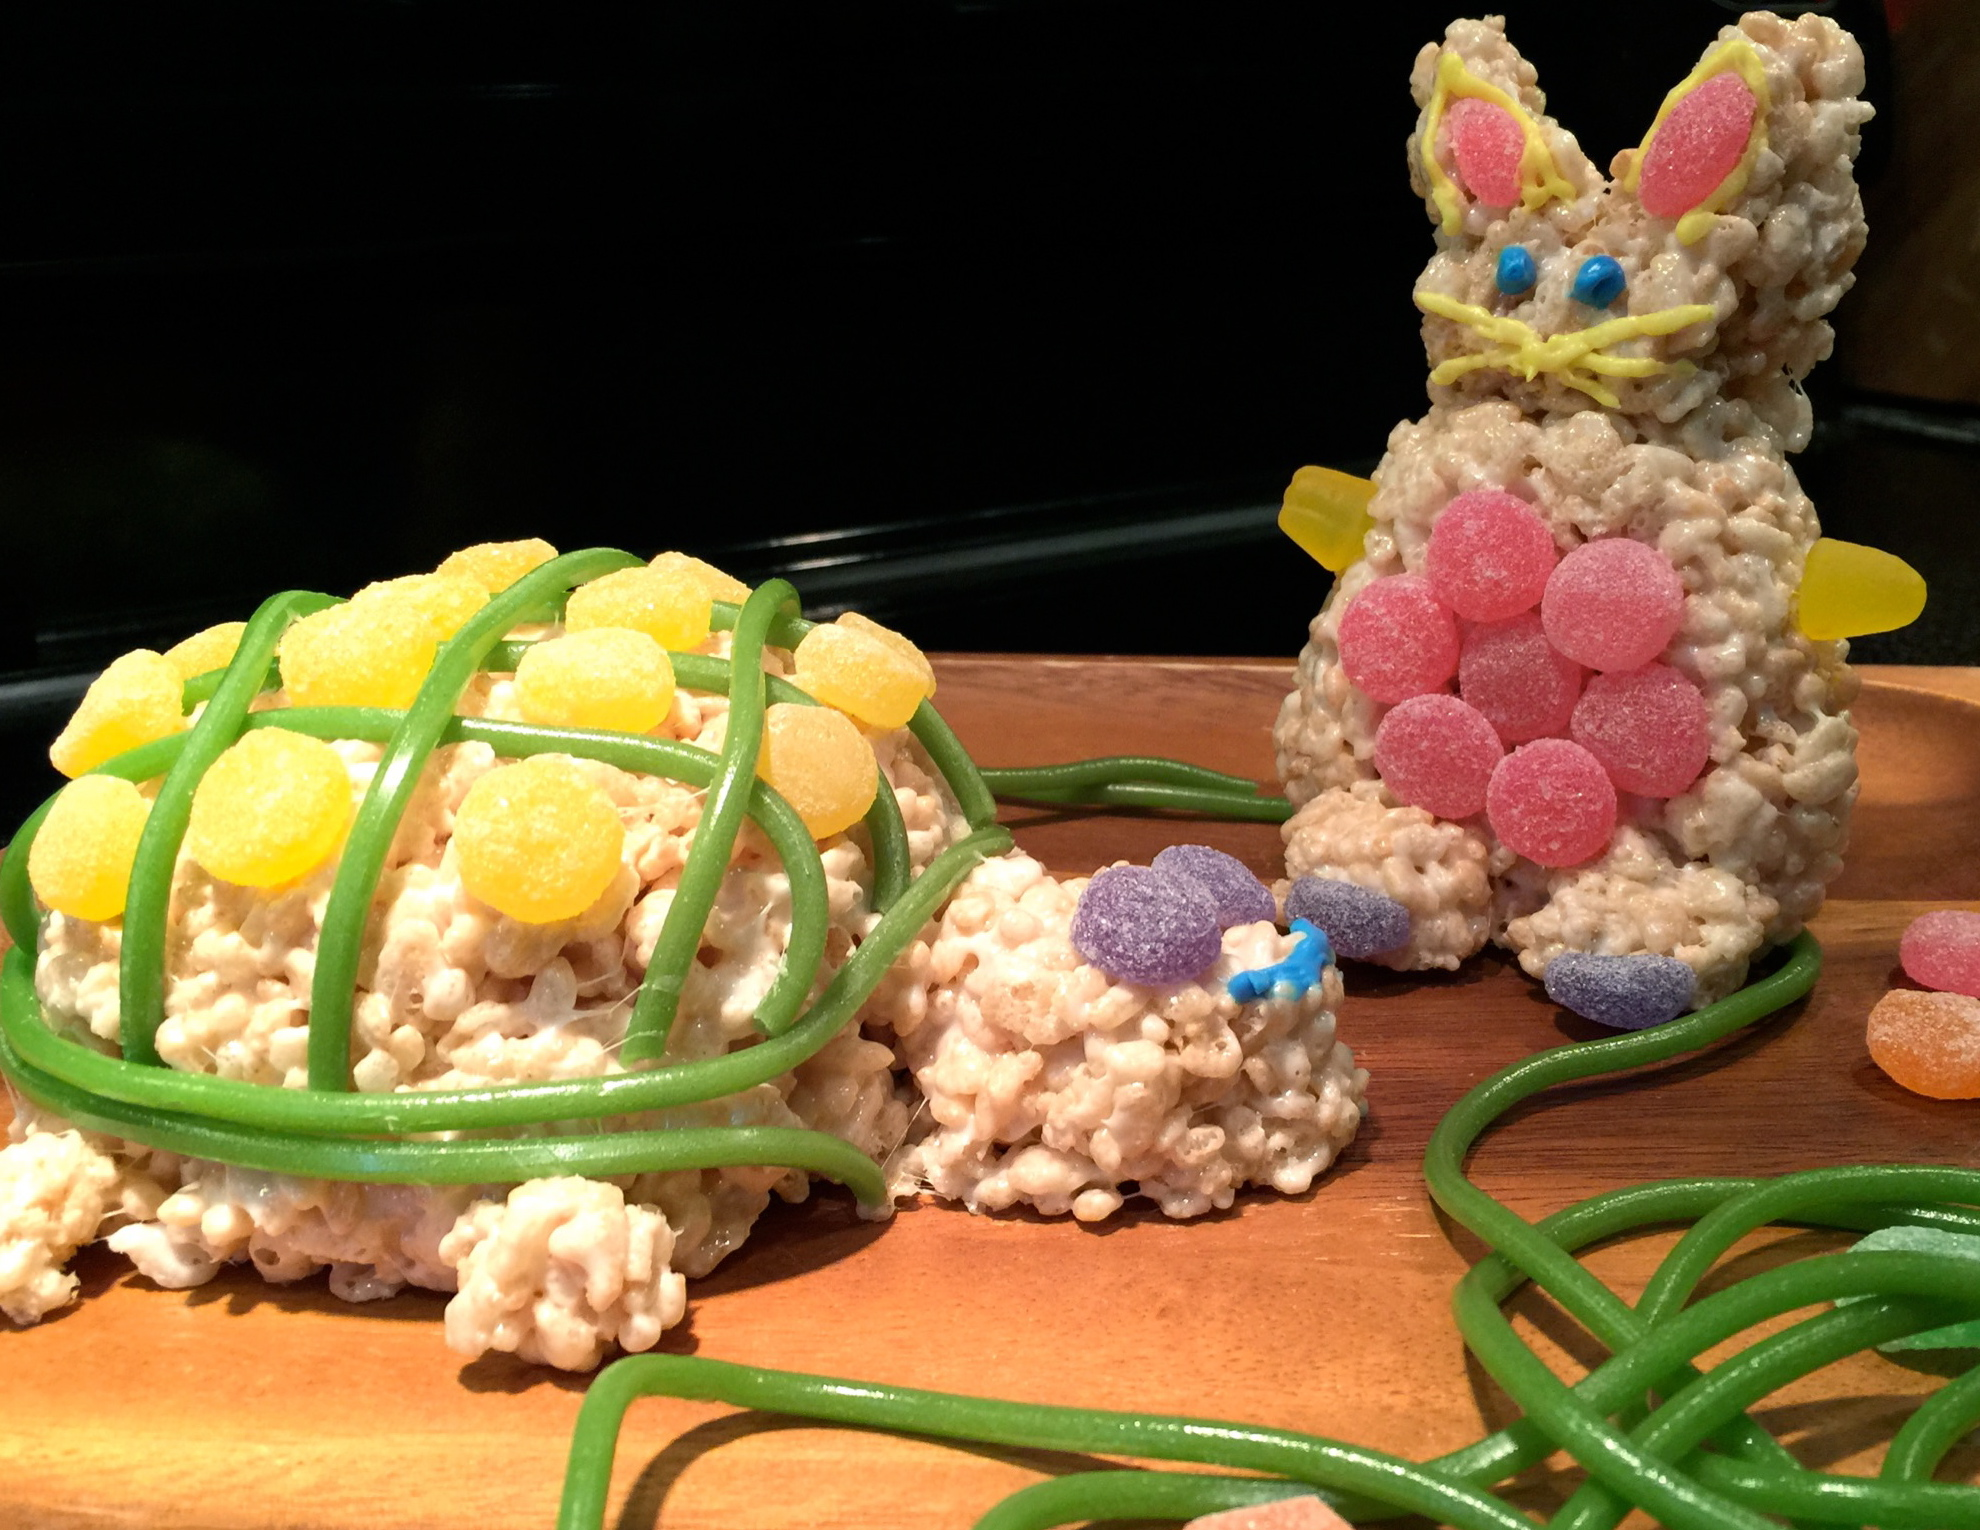 Join Rice Krispies In Making Treats For Toys!